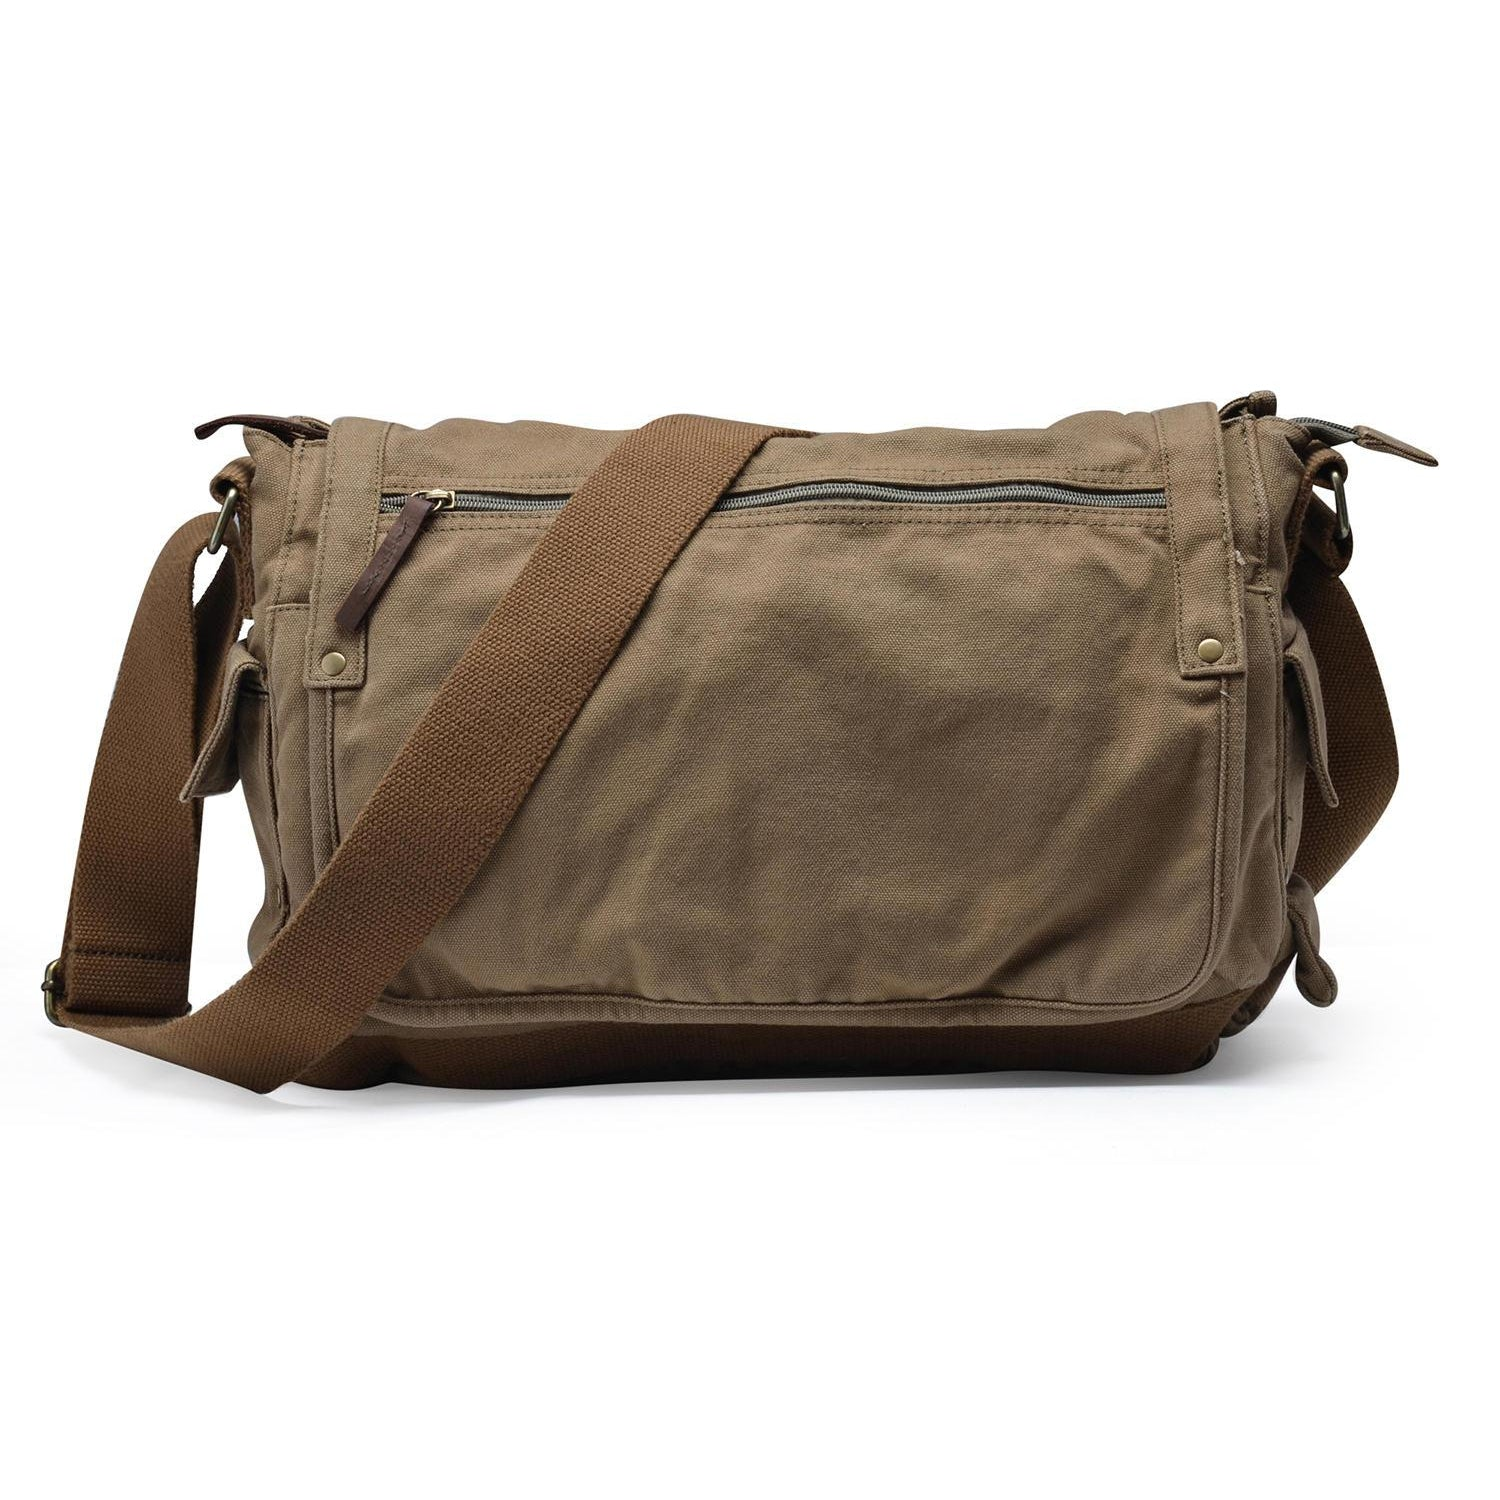 Gootium Canvas Messenger Bags  30622 1c2898bbd